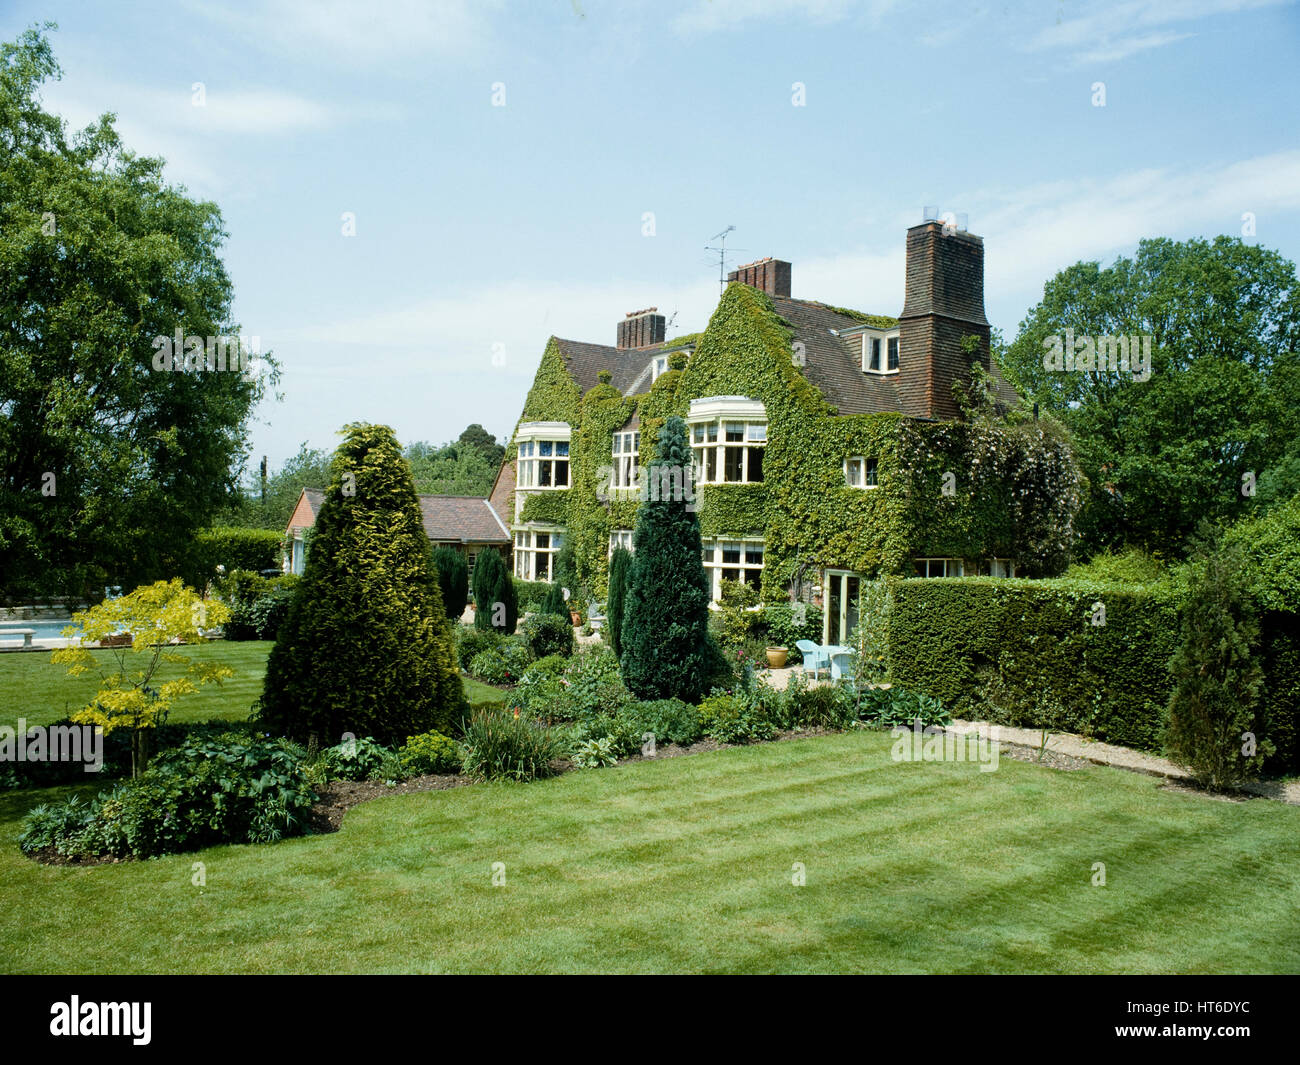 The lawn and exterior of a country house. - Stock Image